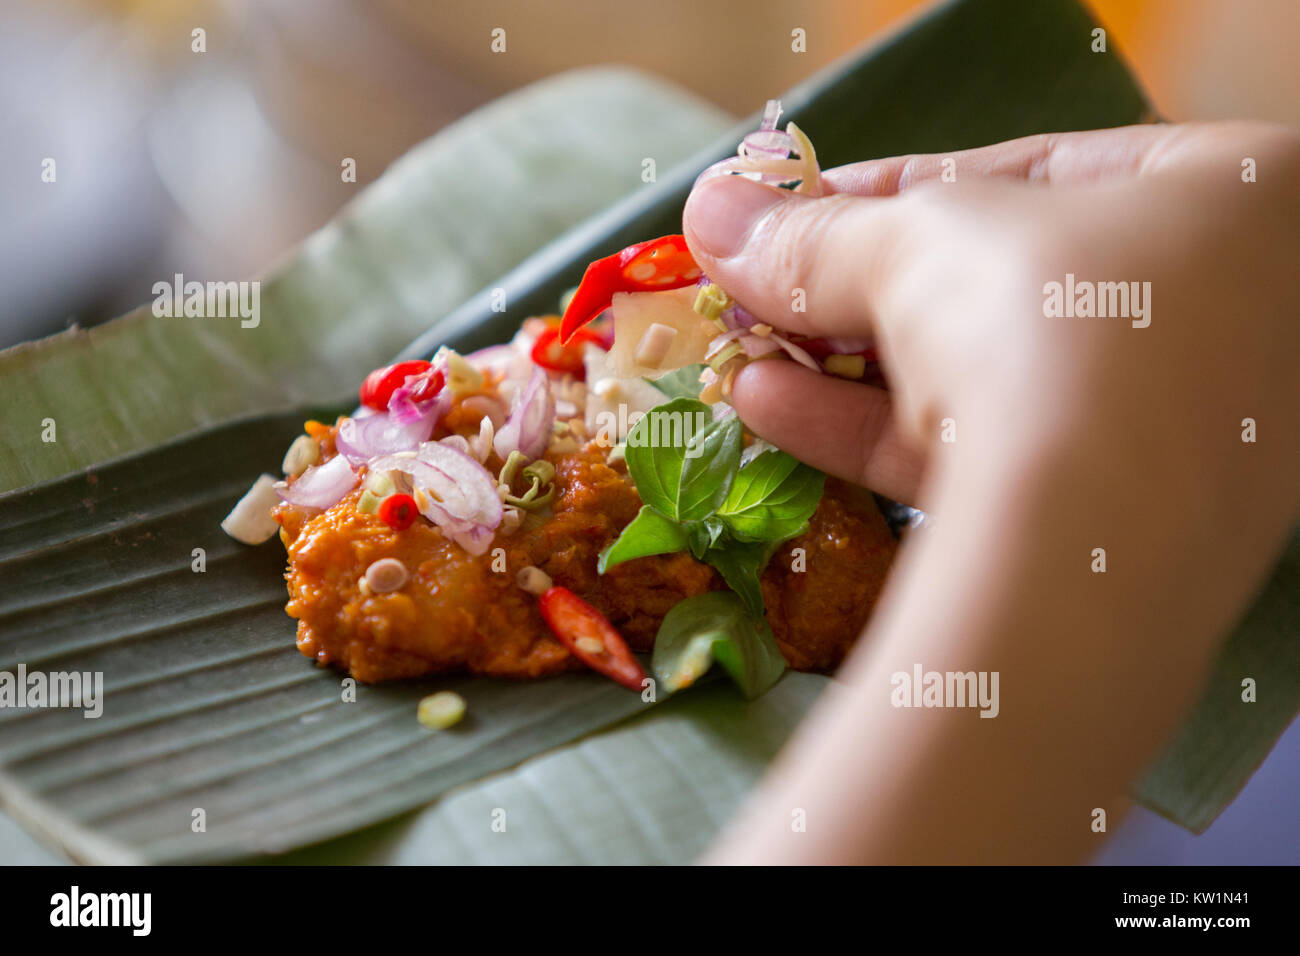 traditional asian cuisine - Stock Image